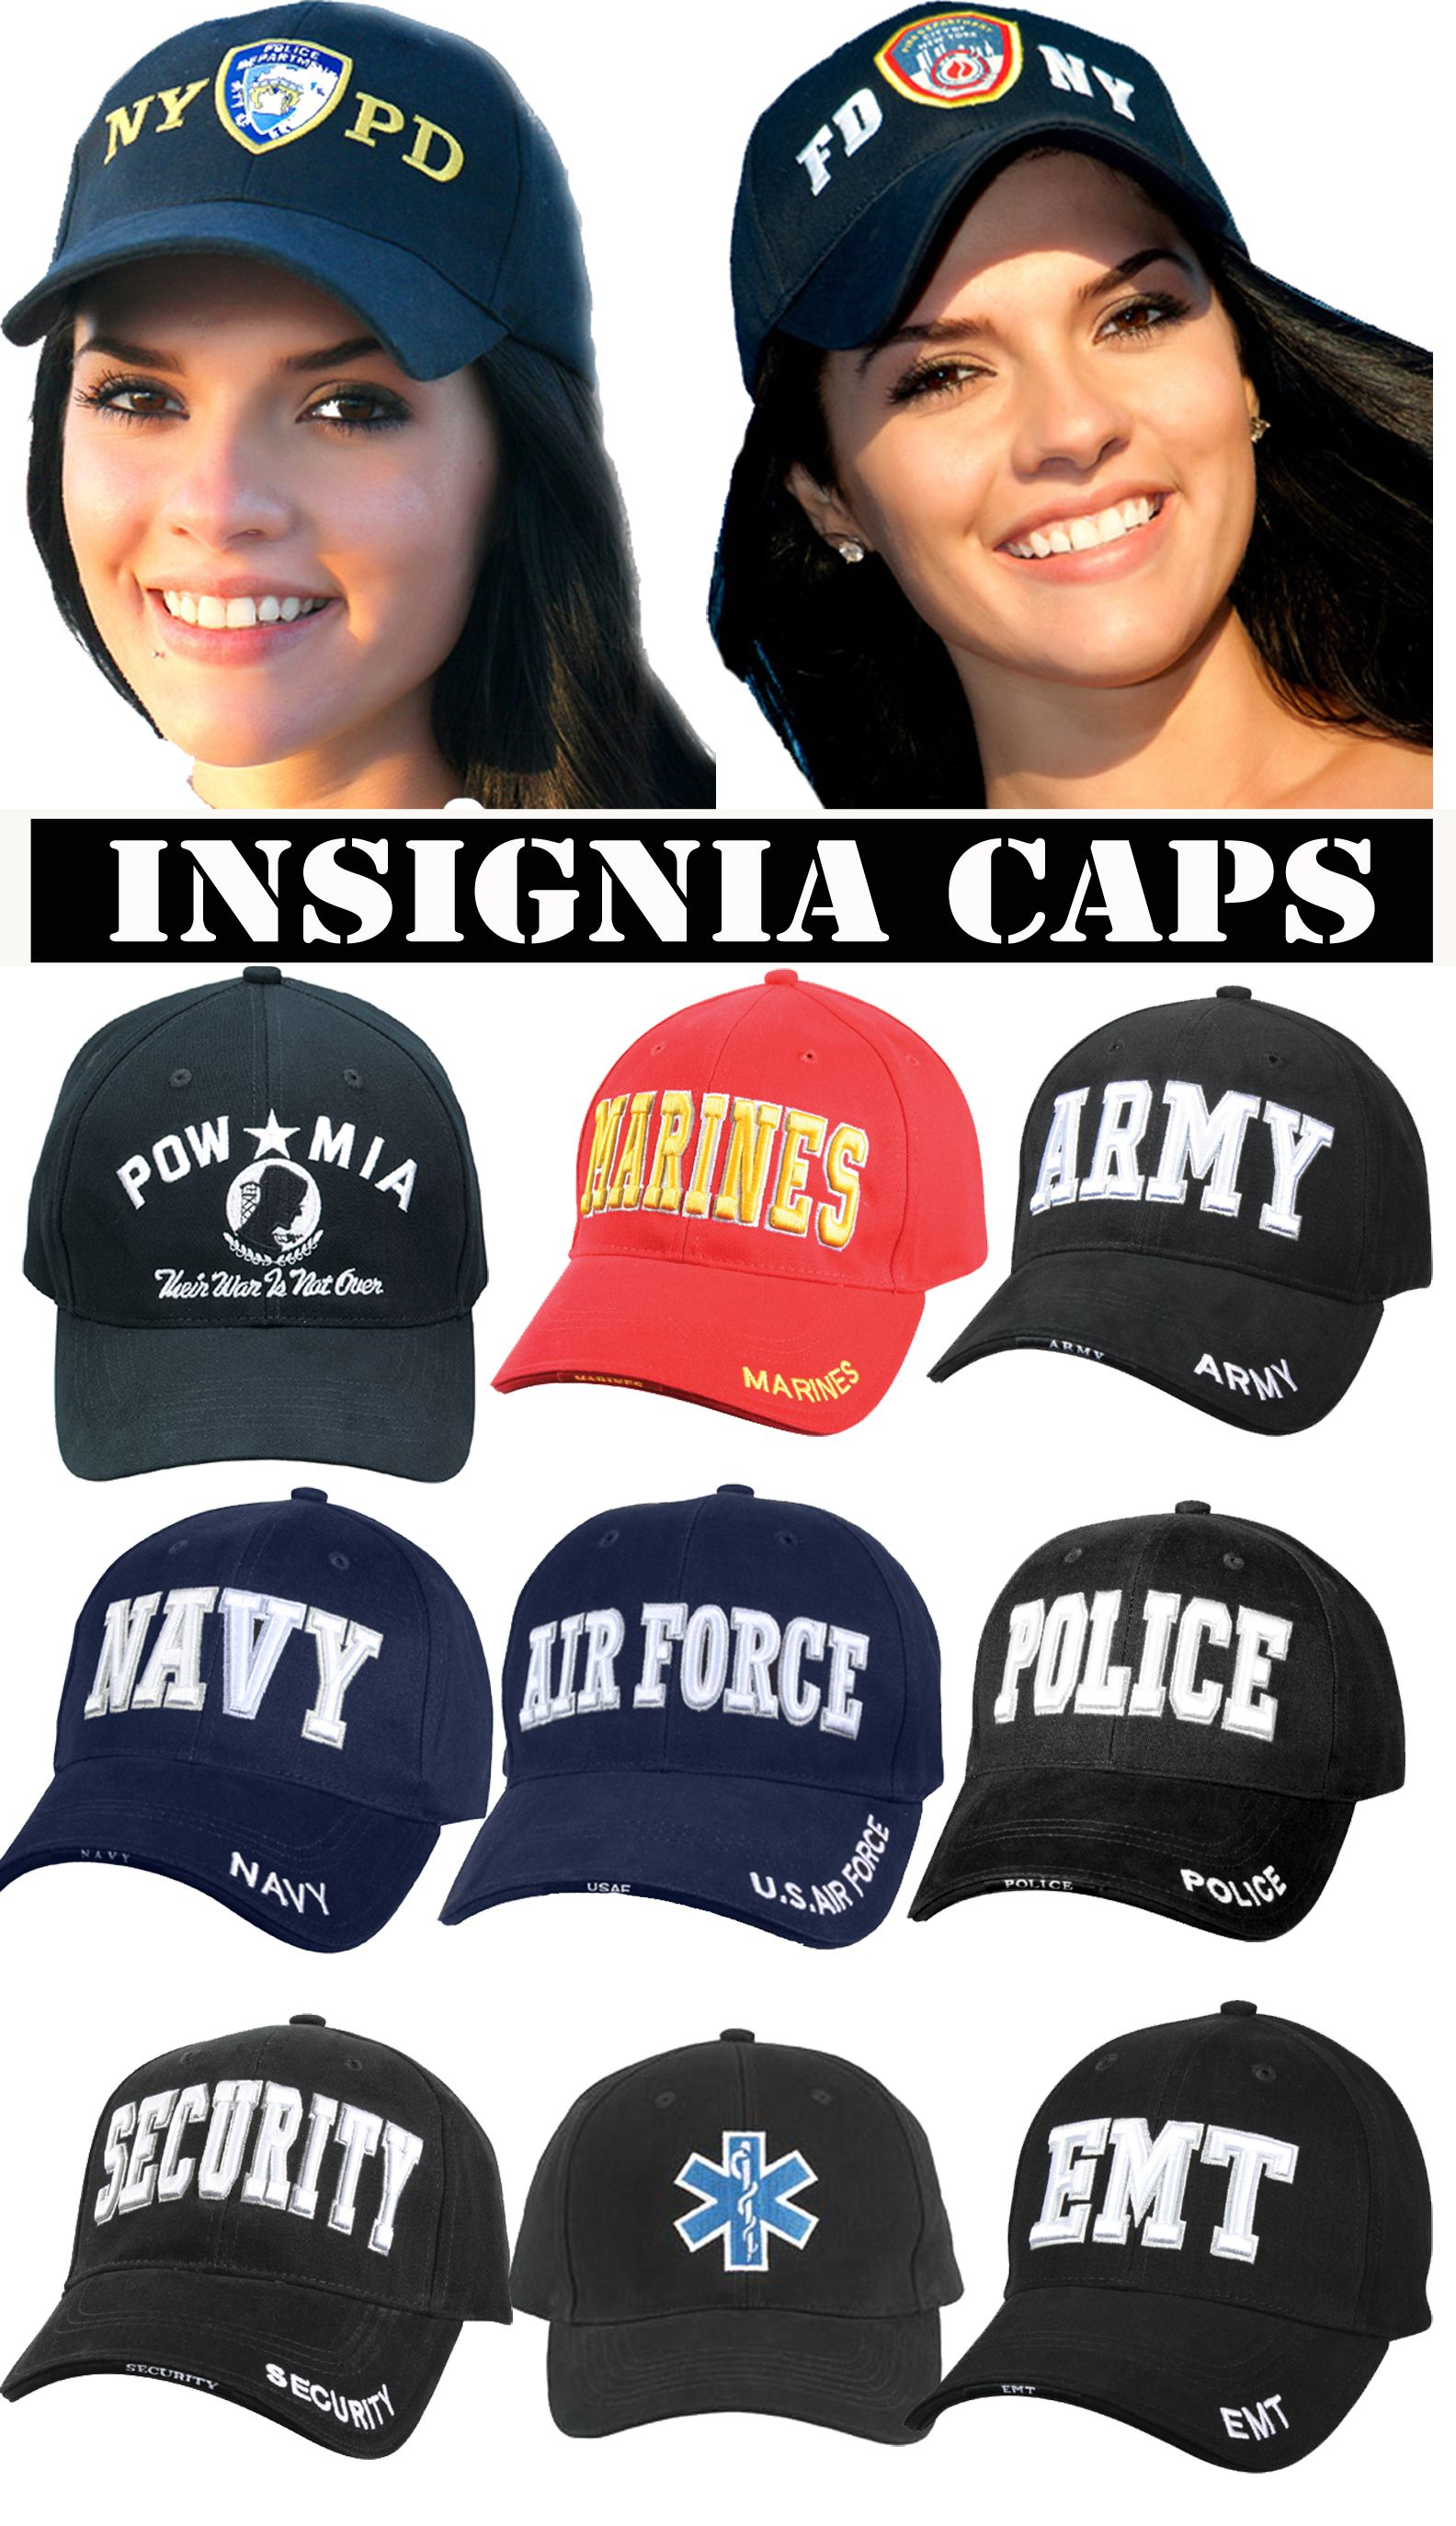 Shop http://www.bdus.com for insignia caps. NYPD Official and Military baseball caps